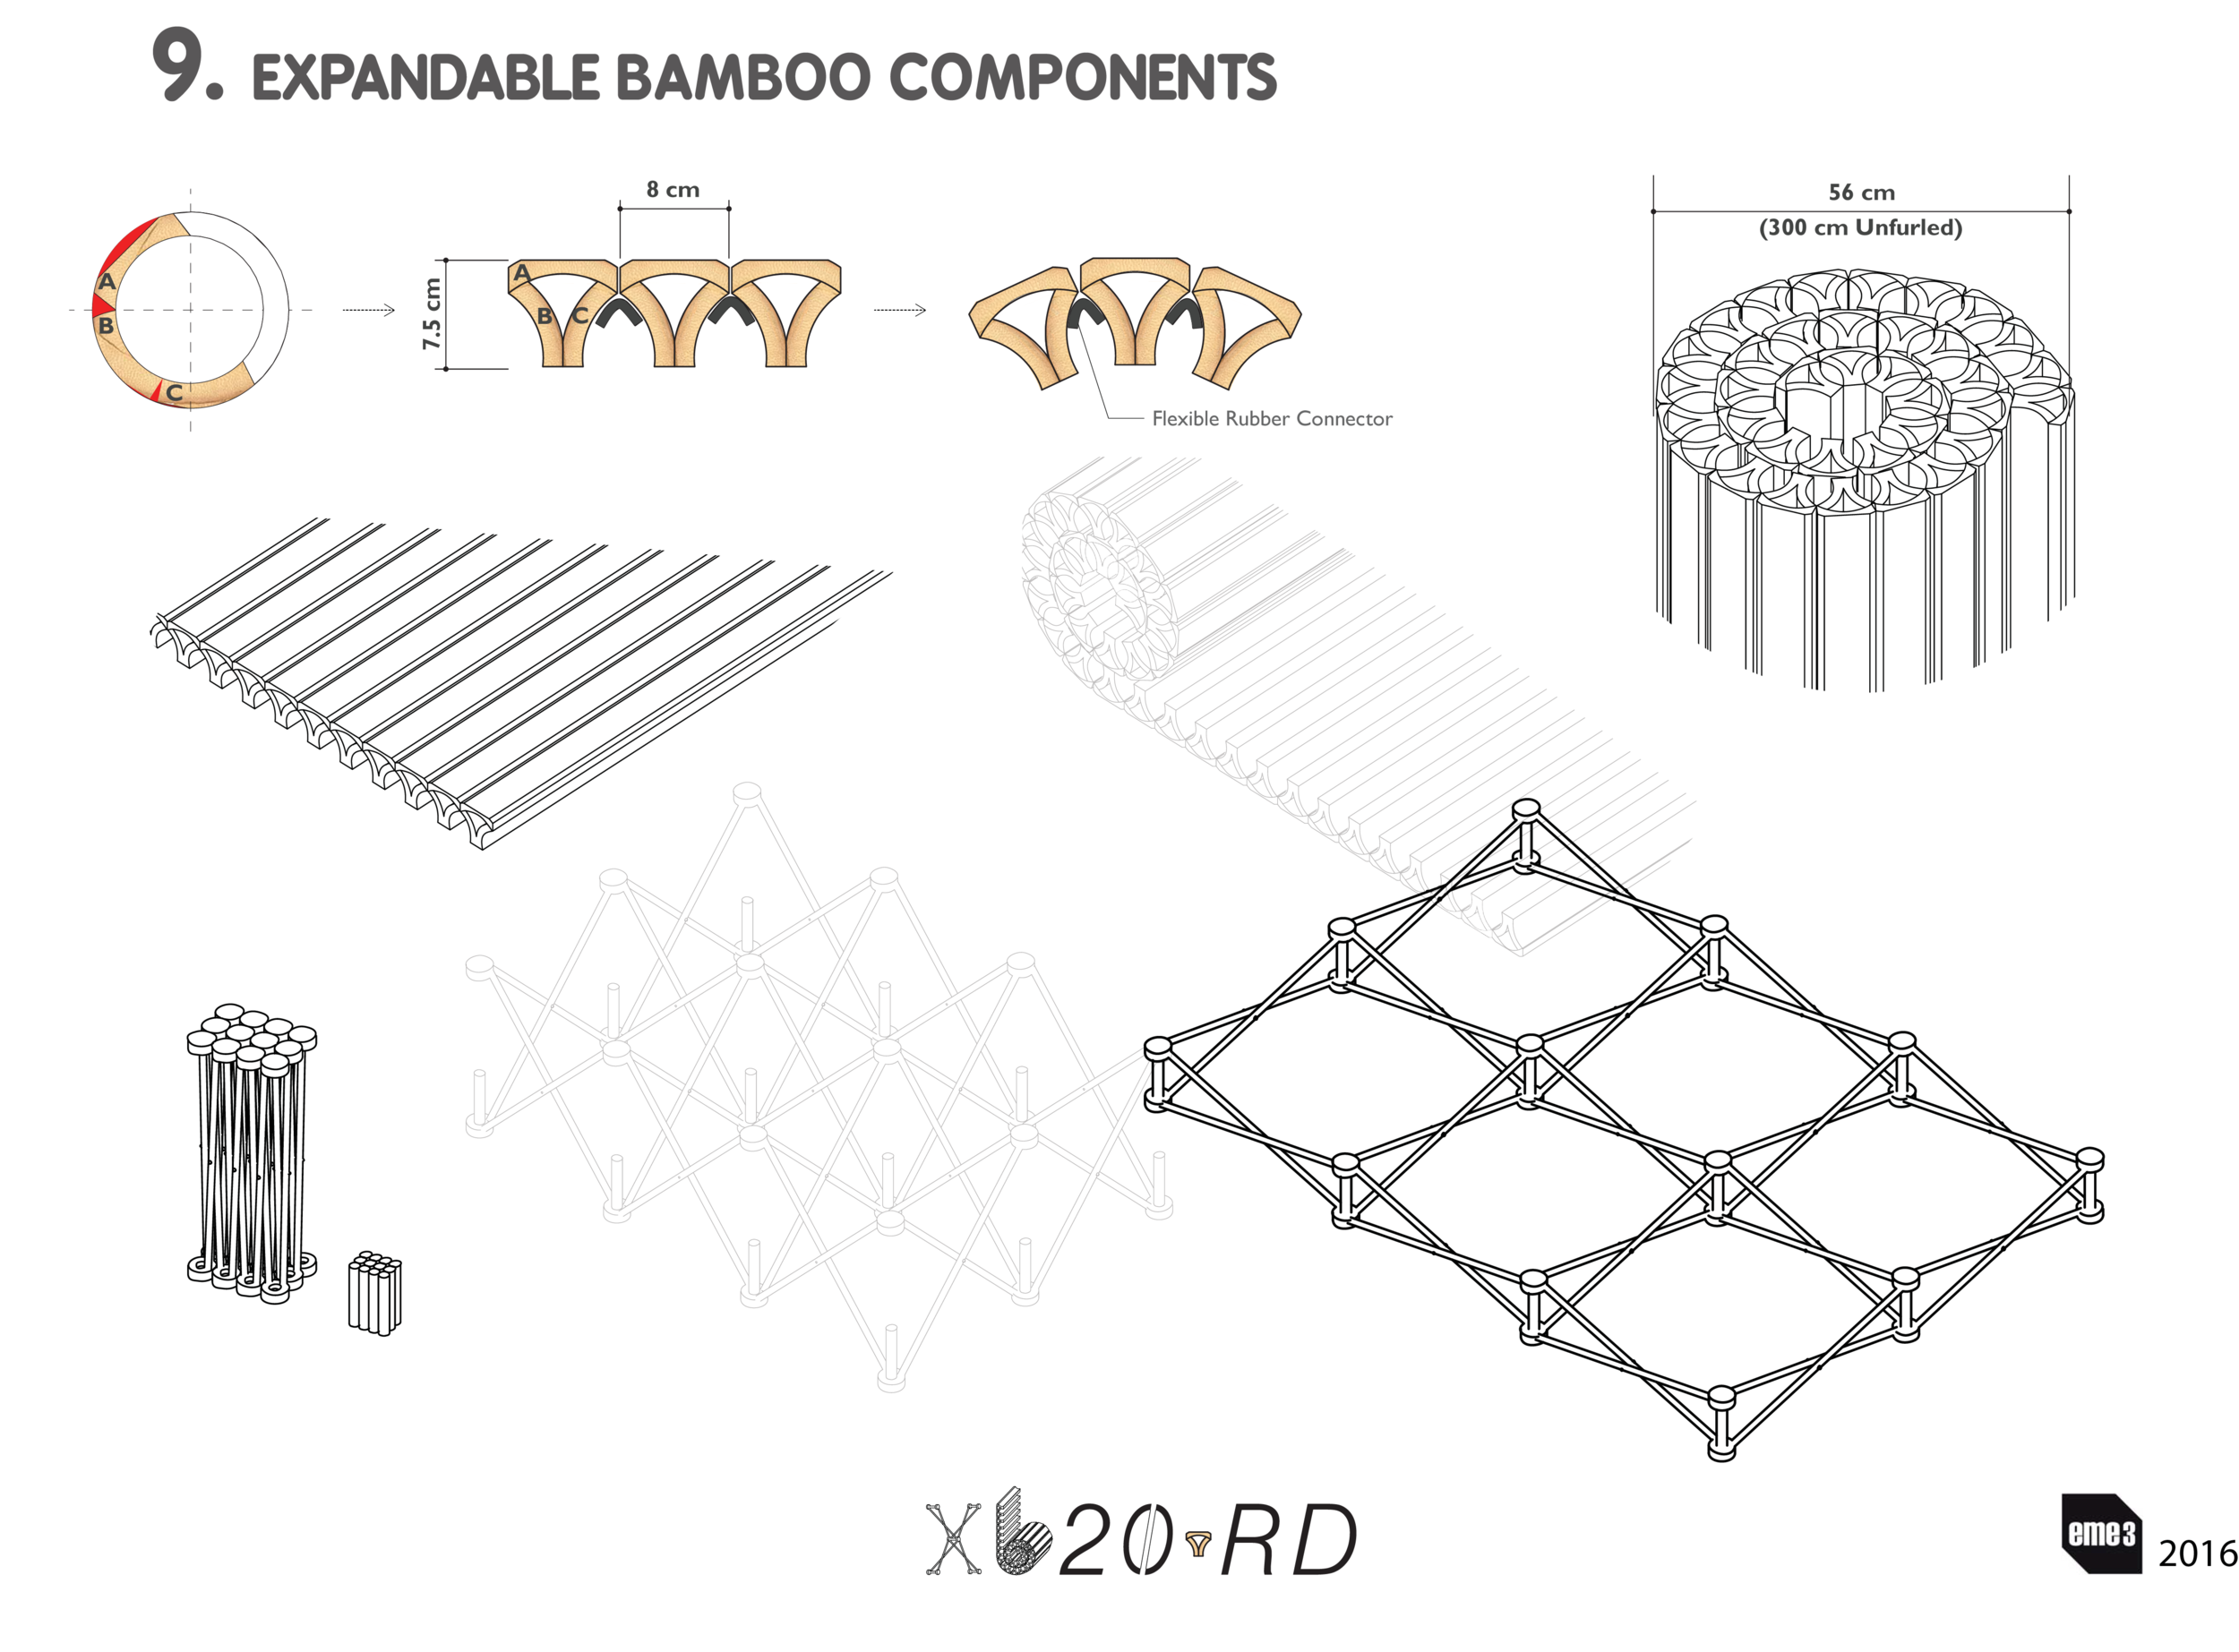 09_EXPANDABLE BAMBOO COMPONENTS.png